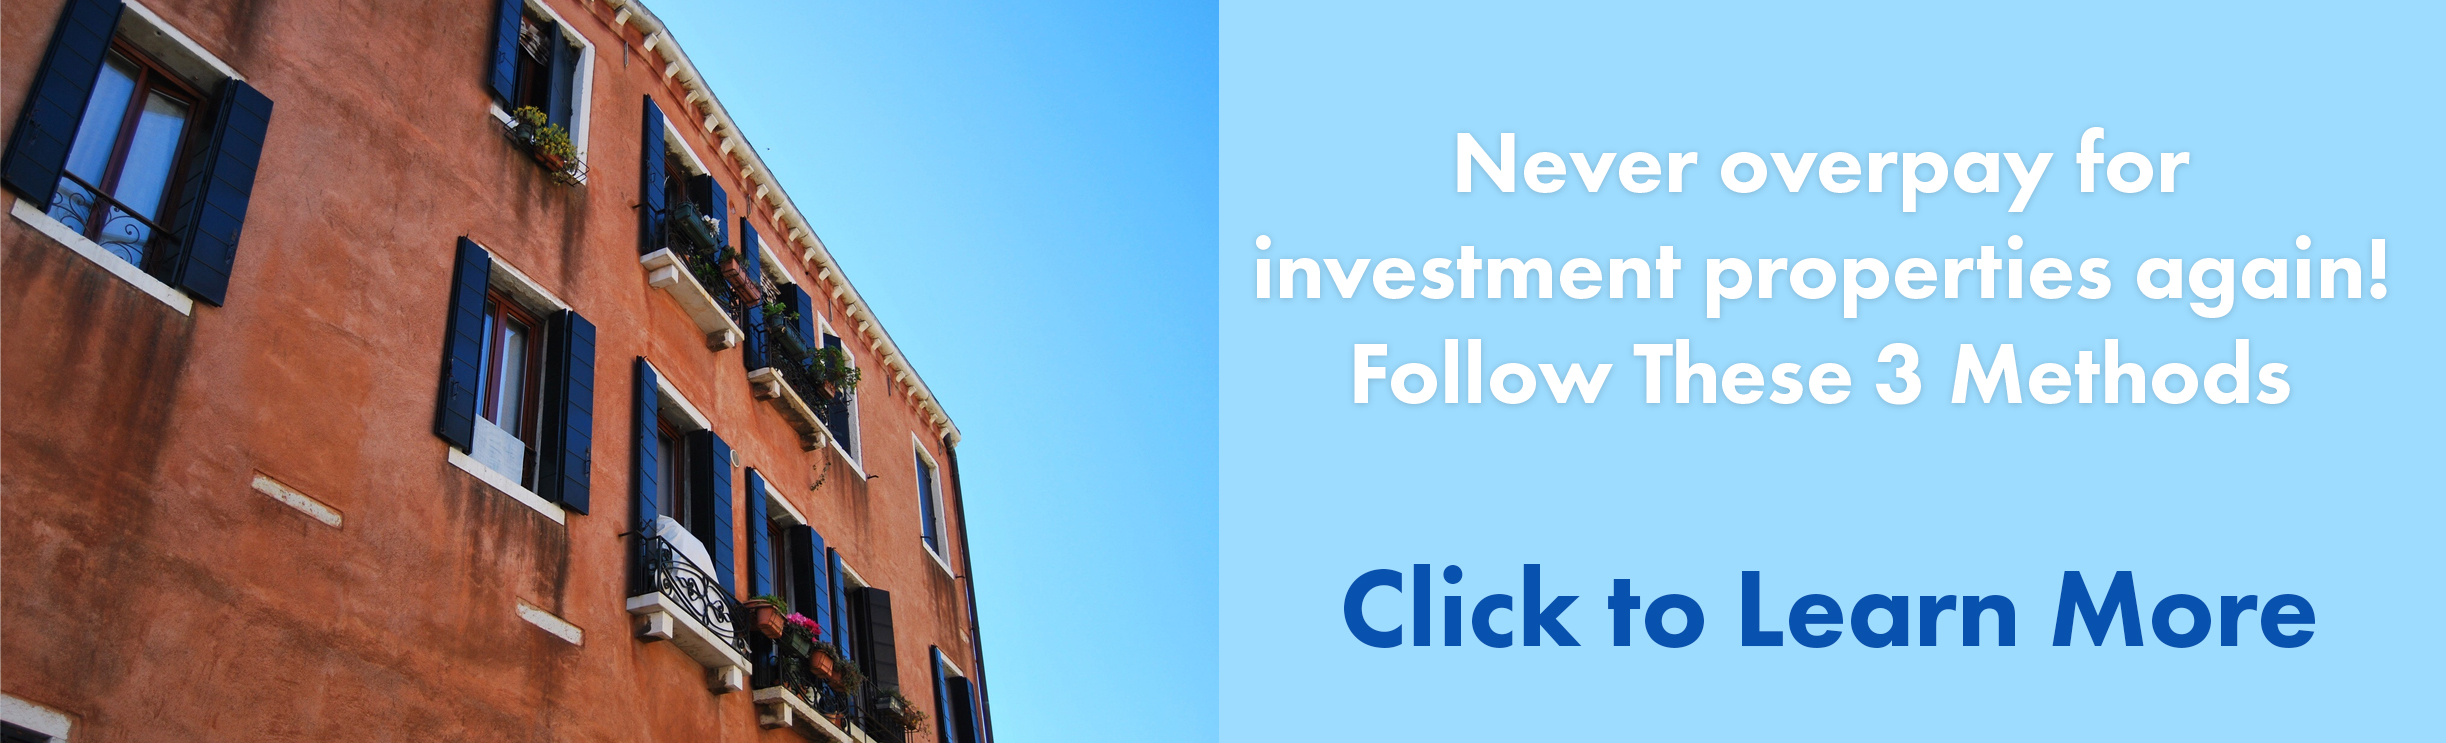 never overpay for investment properties